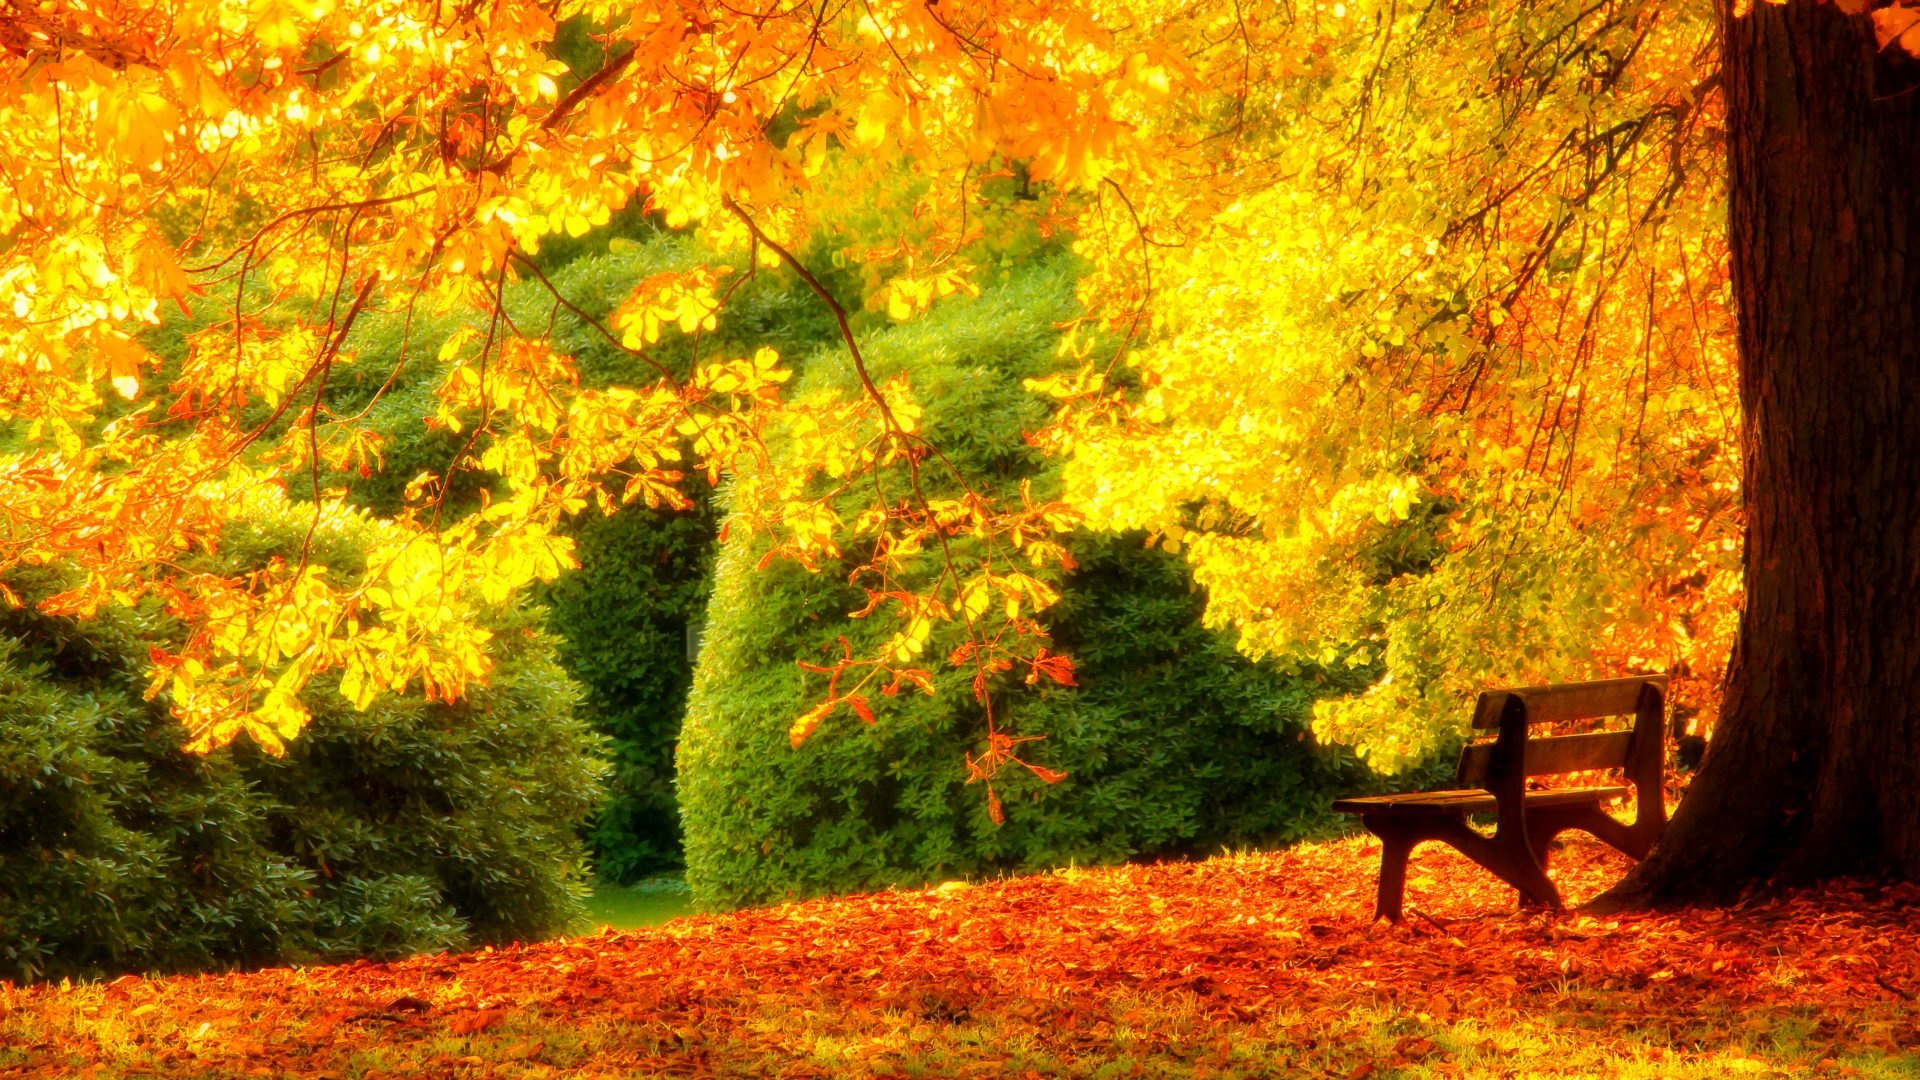 Lovely Fall Scenery Backgrounds Free Download